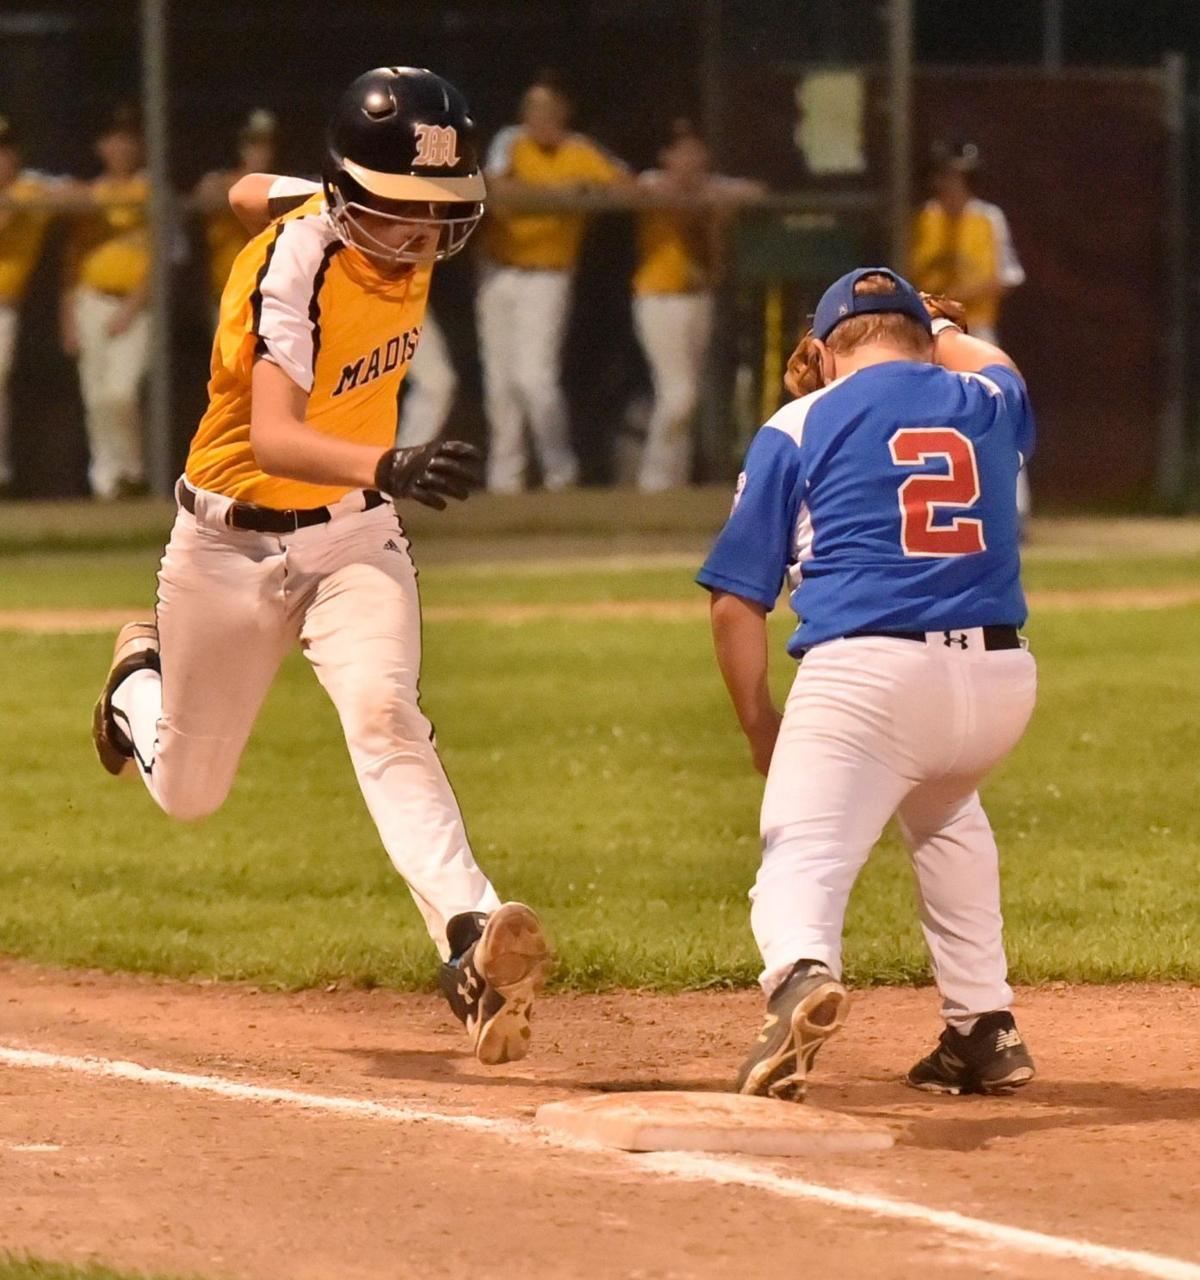 Little League: Wallingford ousts Madison to remain alive